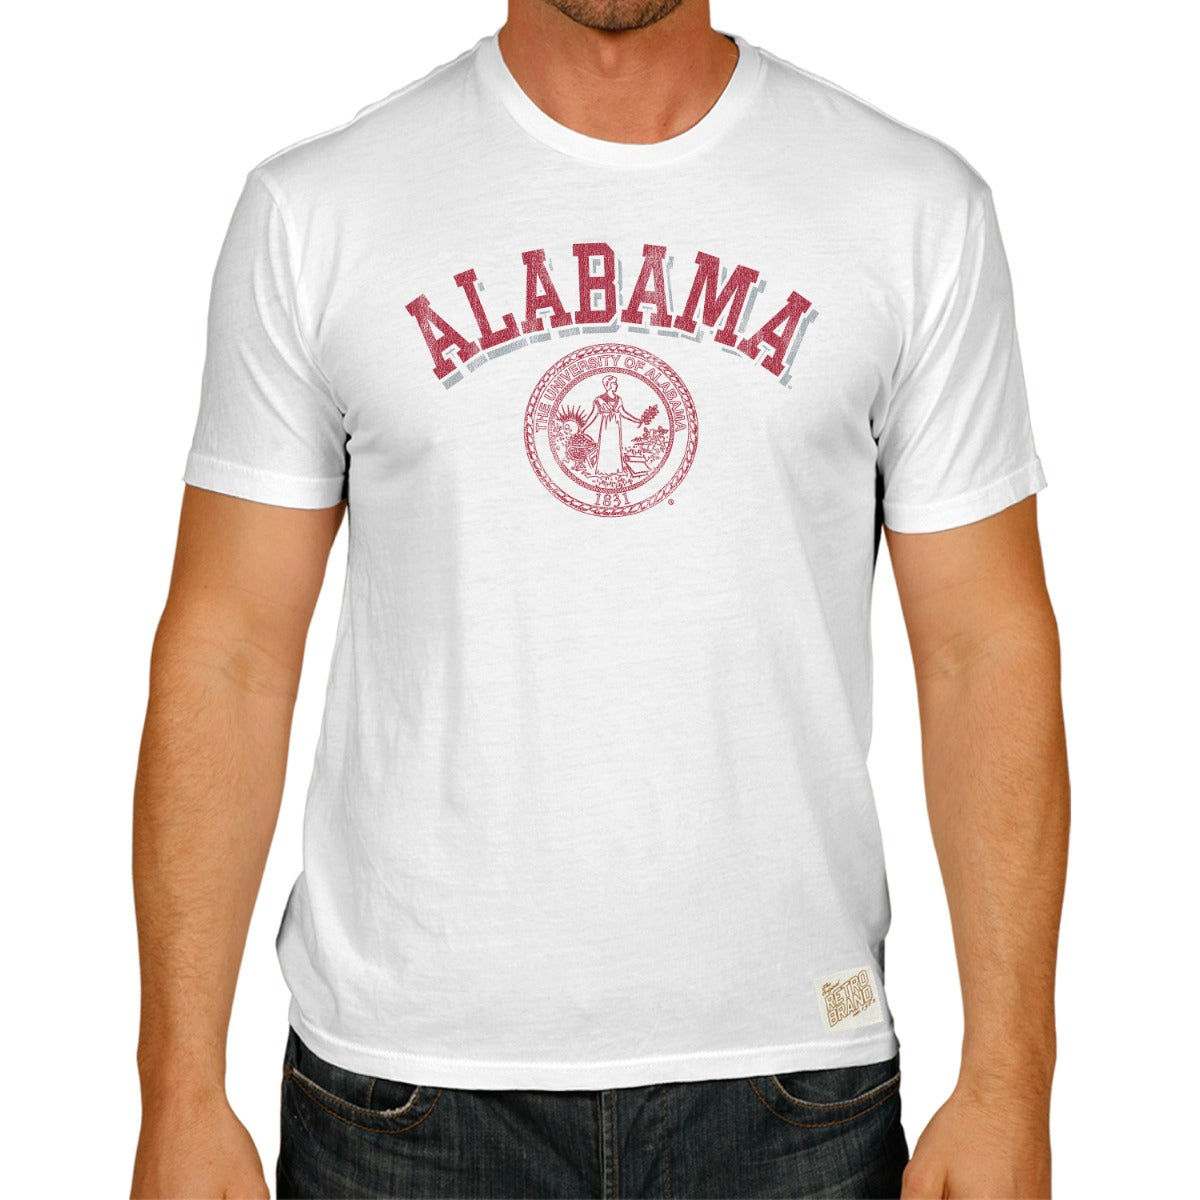 Alabama Men's Worlds Best Tee